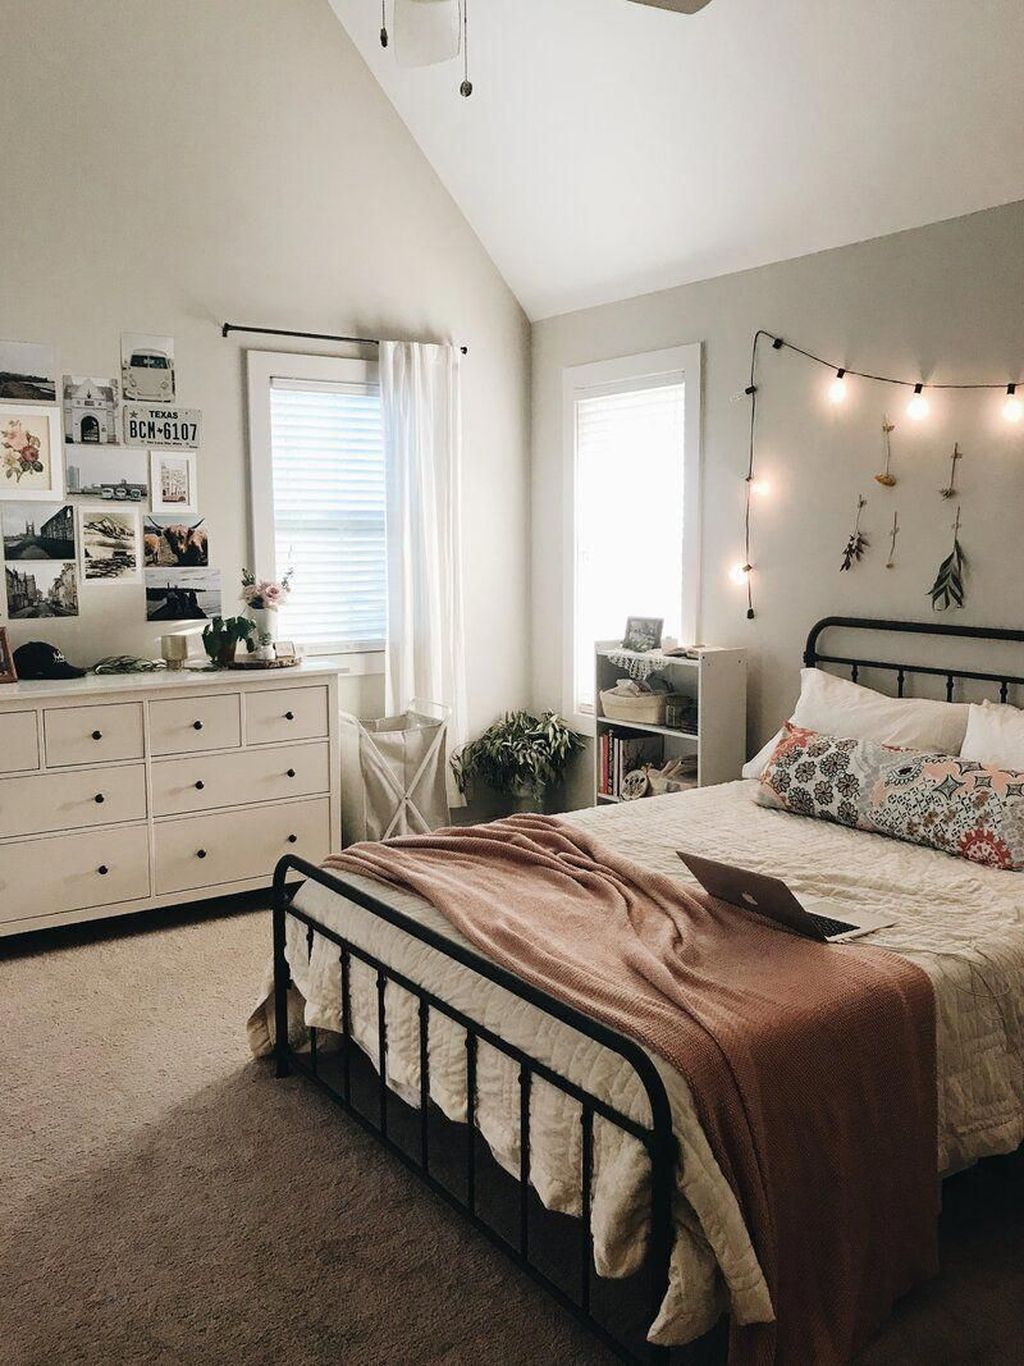 The Best DIY Bedroom Decor Ideas You Have To Try 16